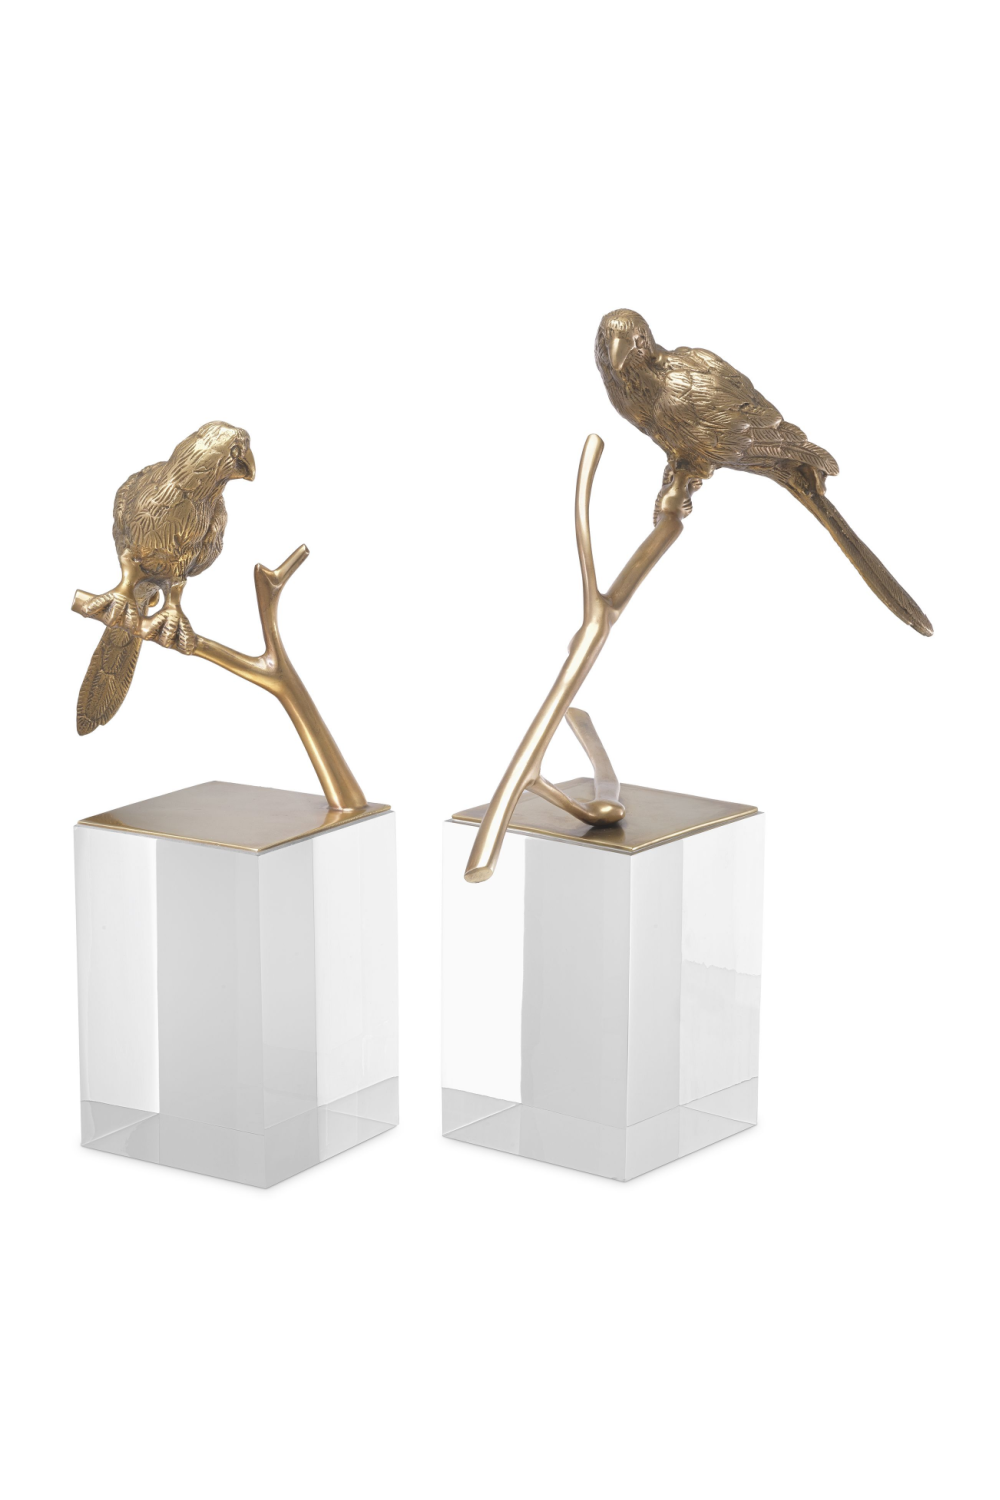 Antique Brass Bird Figurine Set (2) | Eichholtz Morgana